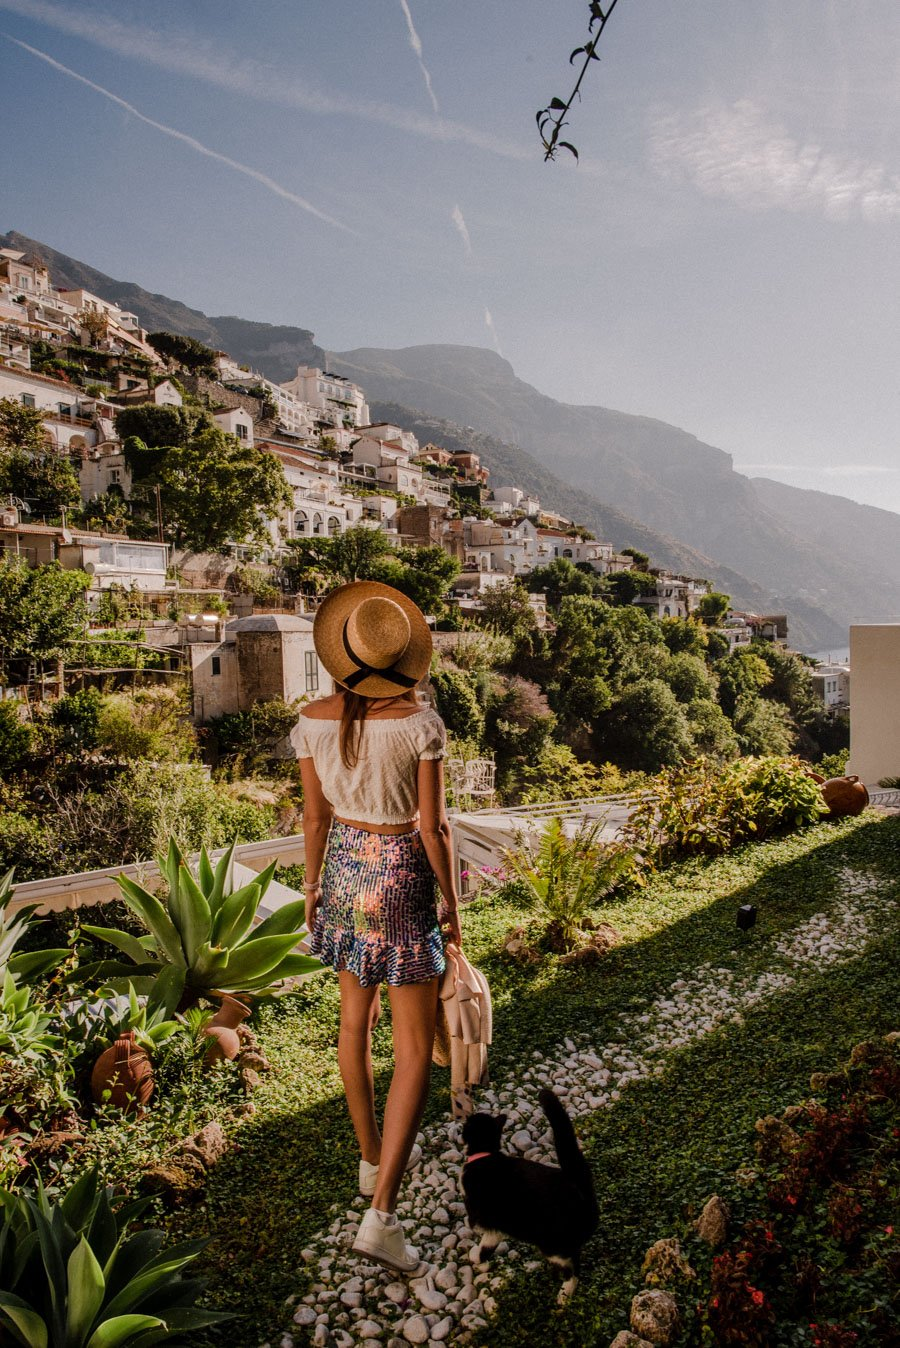 Find the best photo spots in Positano. Get great photos in Positano with these tips and locations.